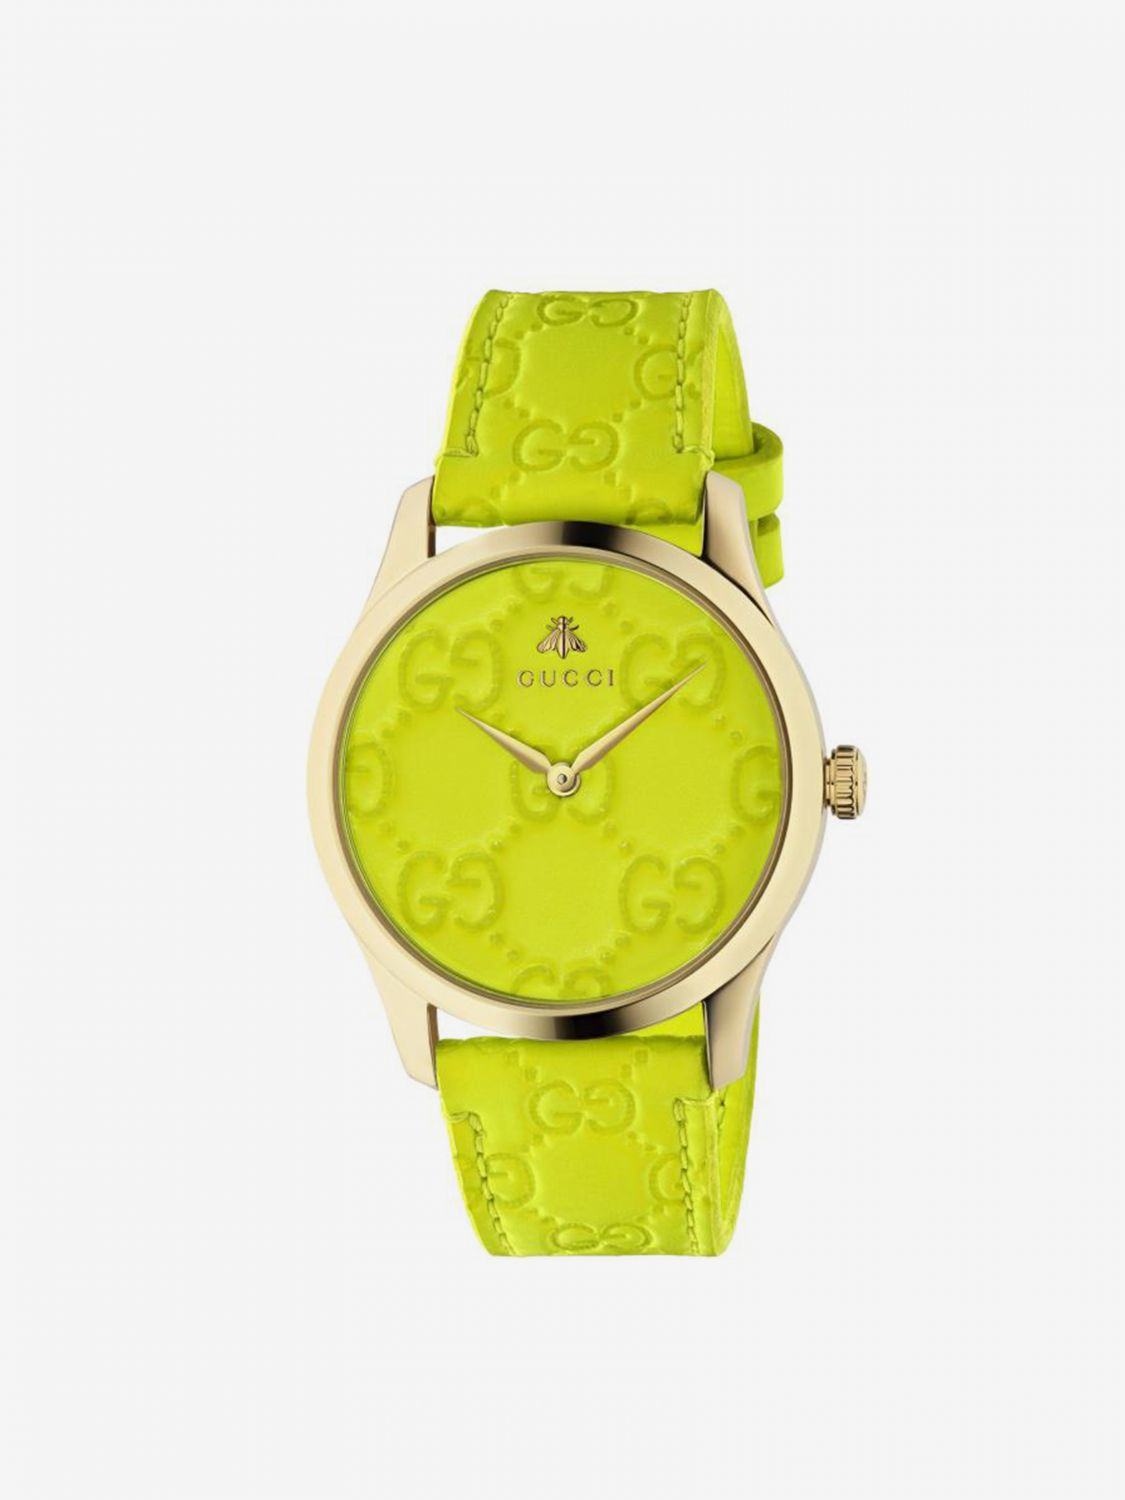 Watch Gucci: GG watch with Gucci strap and metal case yellow 1